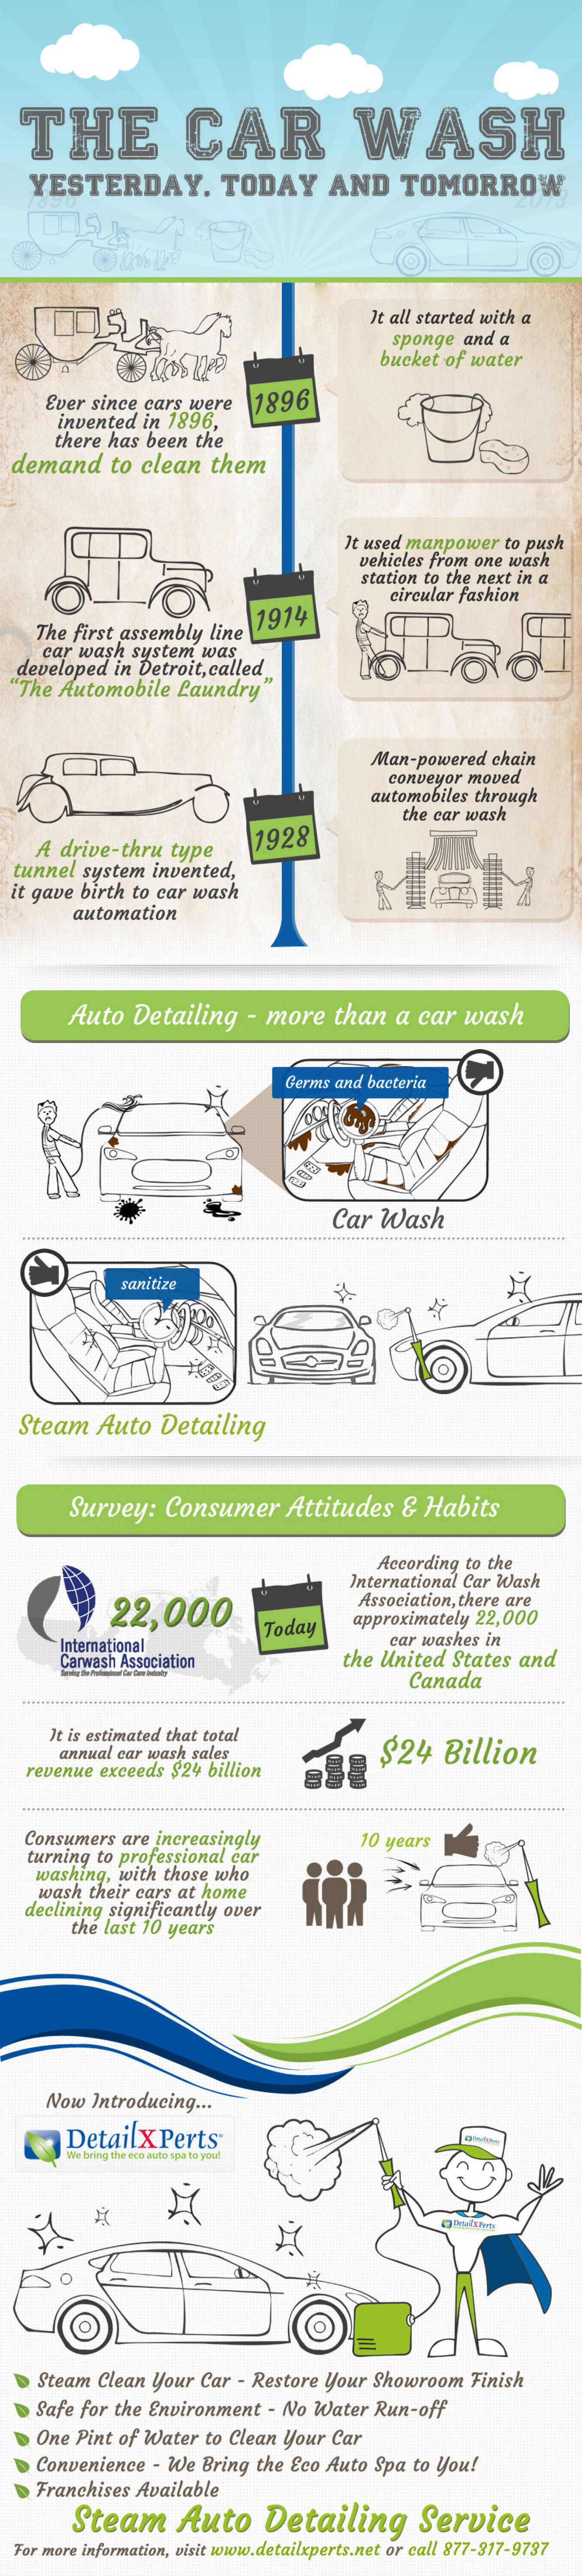 The Car Wash - Yesterday, Today and Tomorrow Infographic